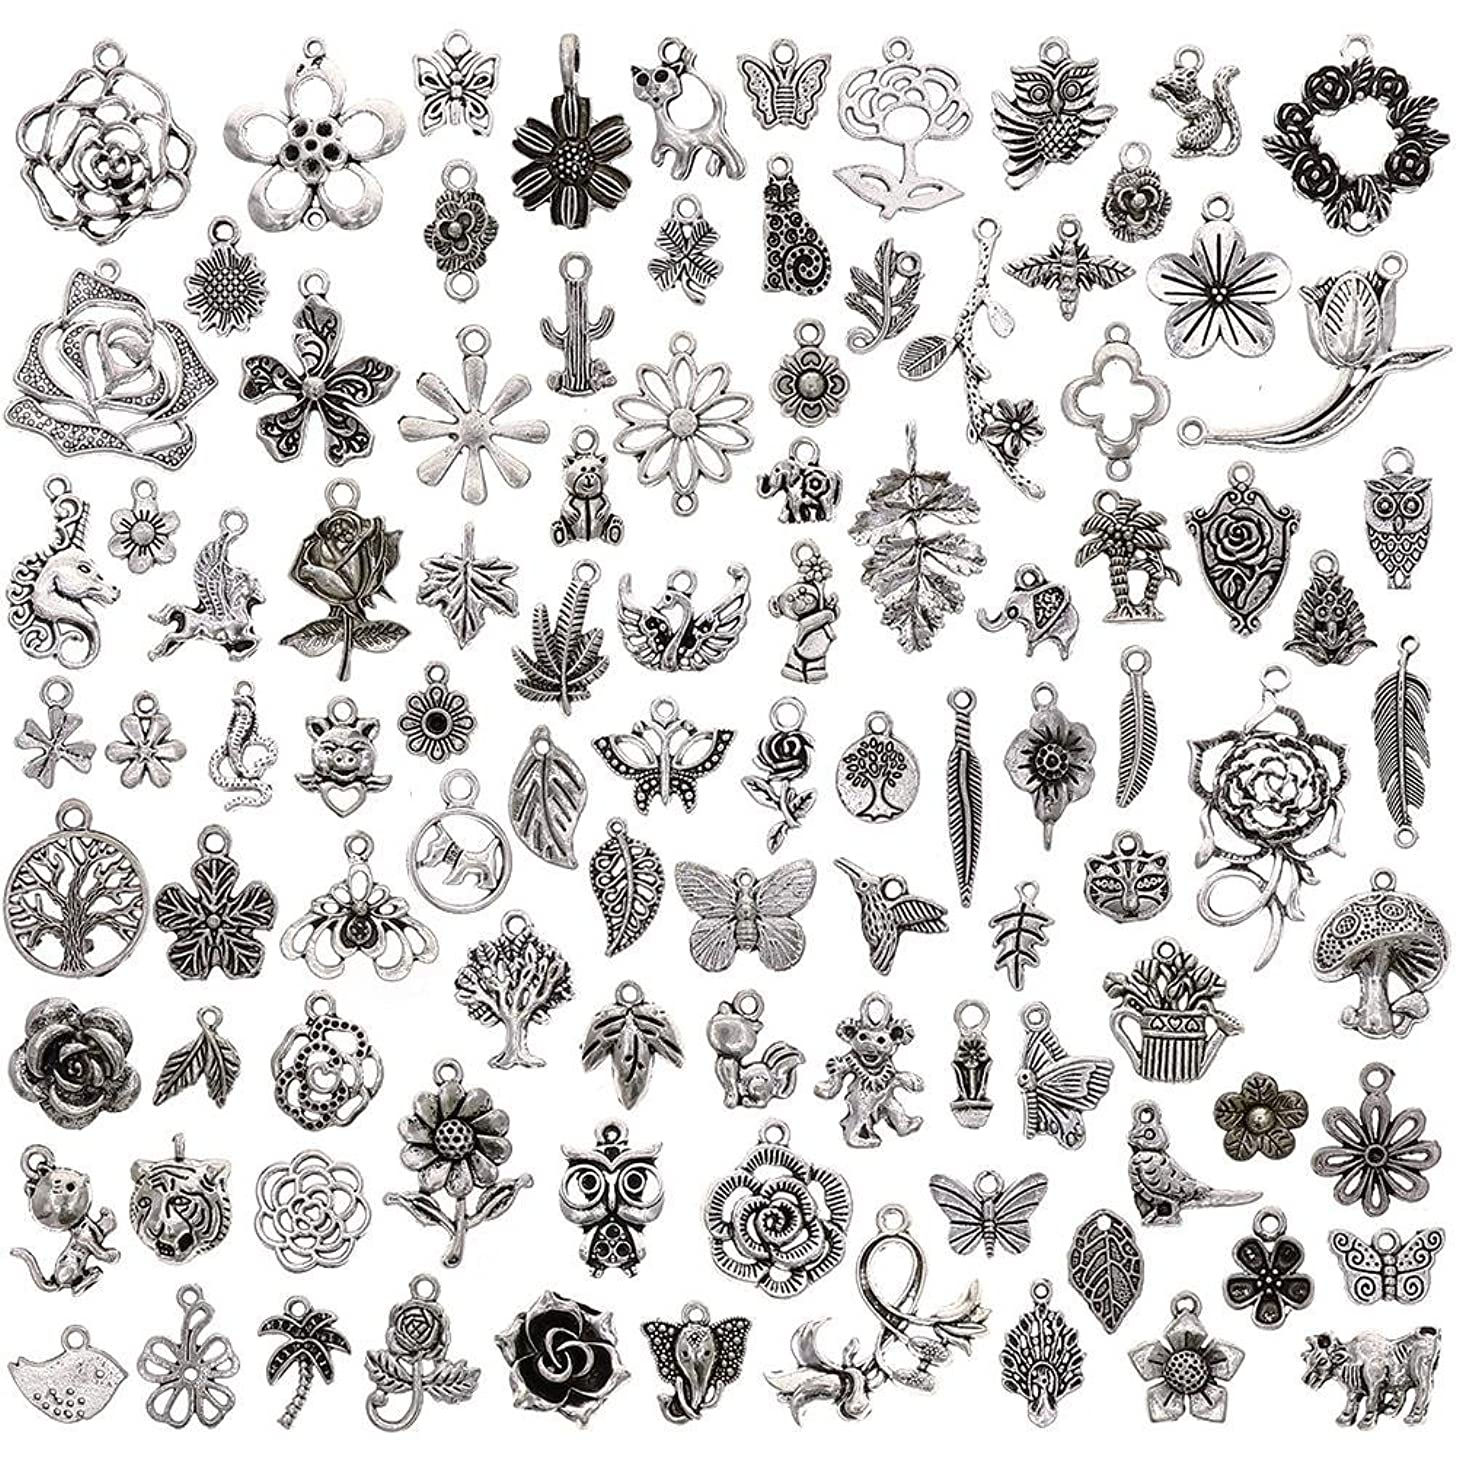 KeyZone Wholesale 100 Pieces Tibetan Silver Plated Mixed Jungle Animal Plant Charms Pendants DIY for Jewelry Making and Crafting